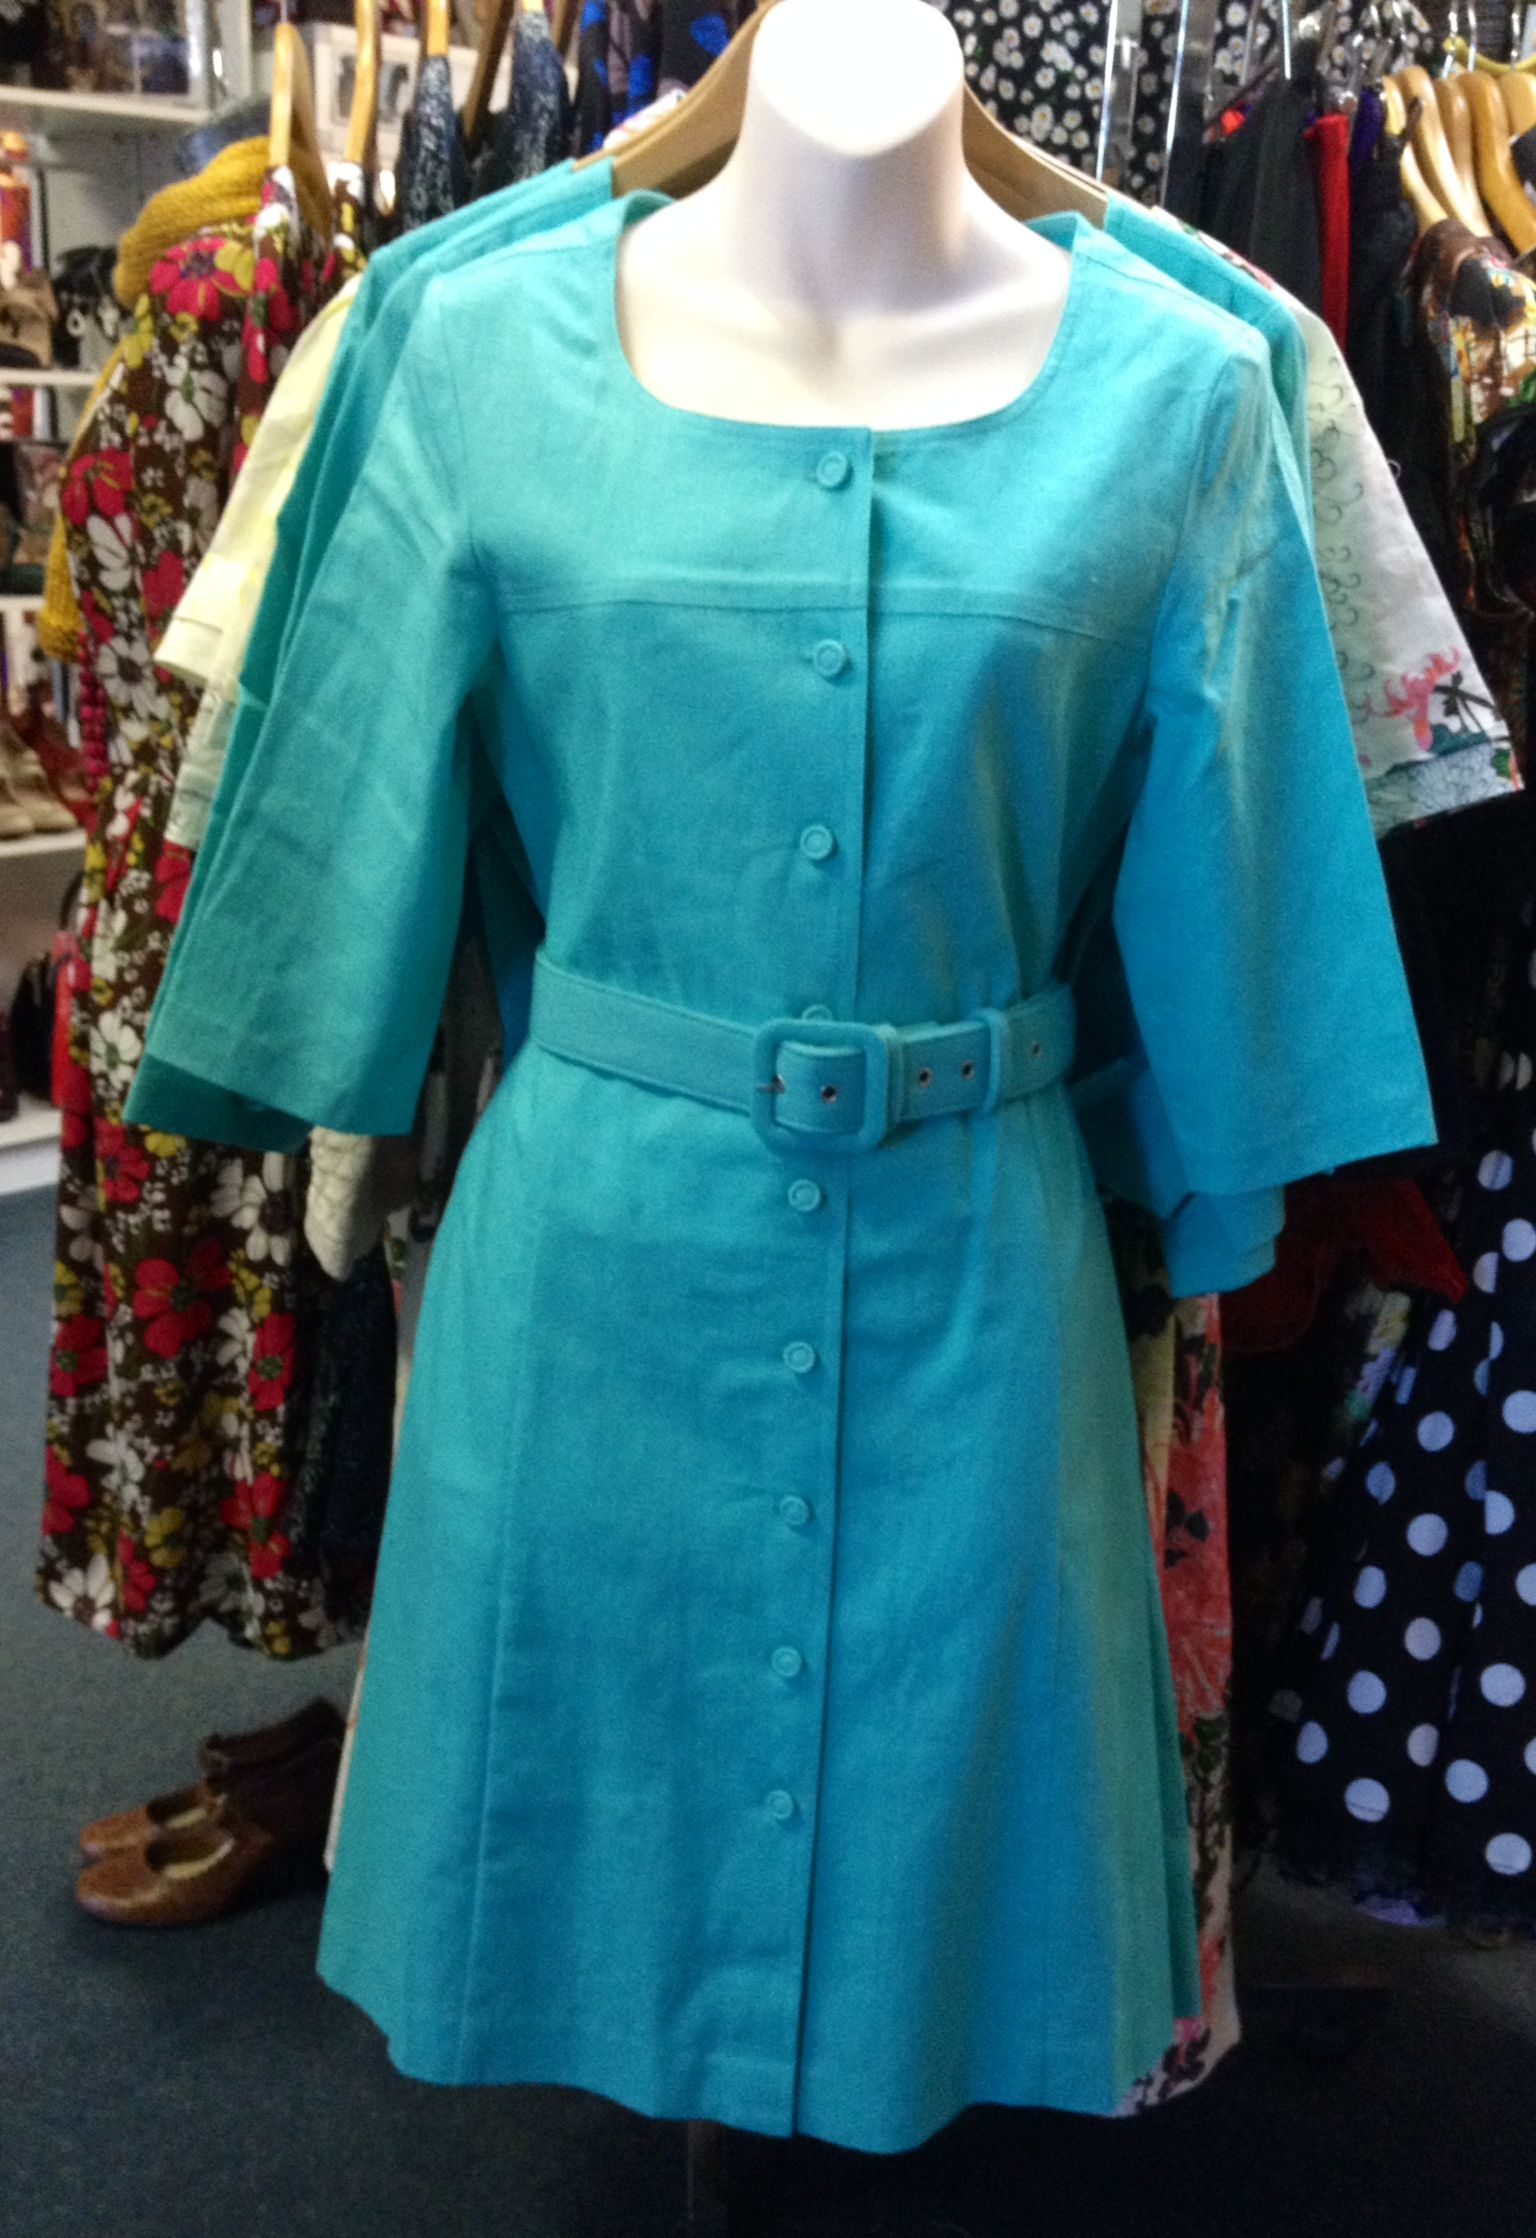 Smart 1960's inspired Shirt Dress by Fever London, comfortable Linen blend with a 3/4 sleeve.  Perfect for work or play!  UK sizes list, please size up for equivalent AU size, eg. UK10 = AU 8